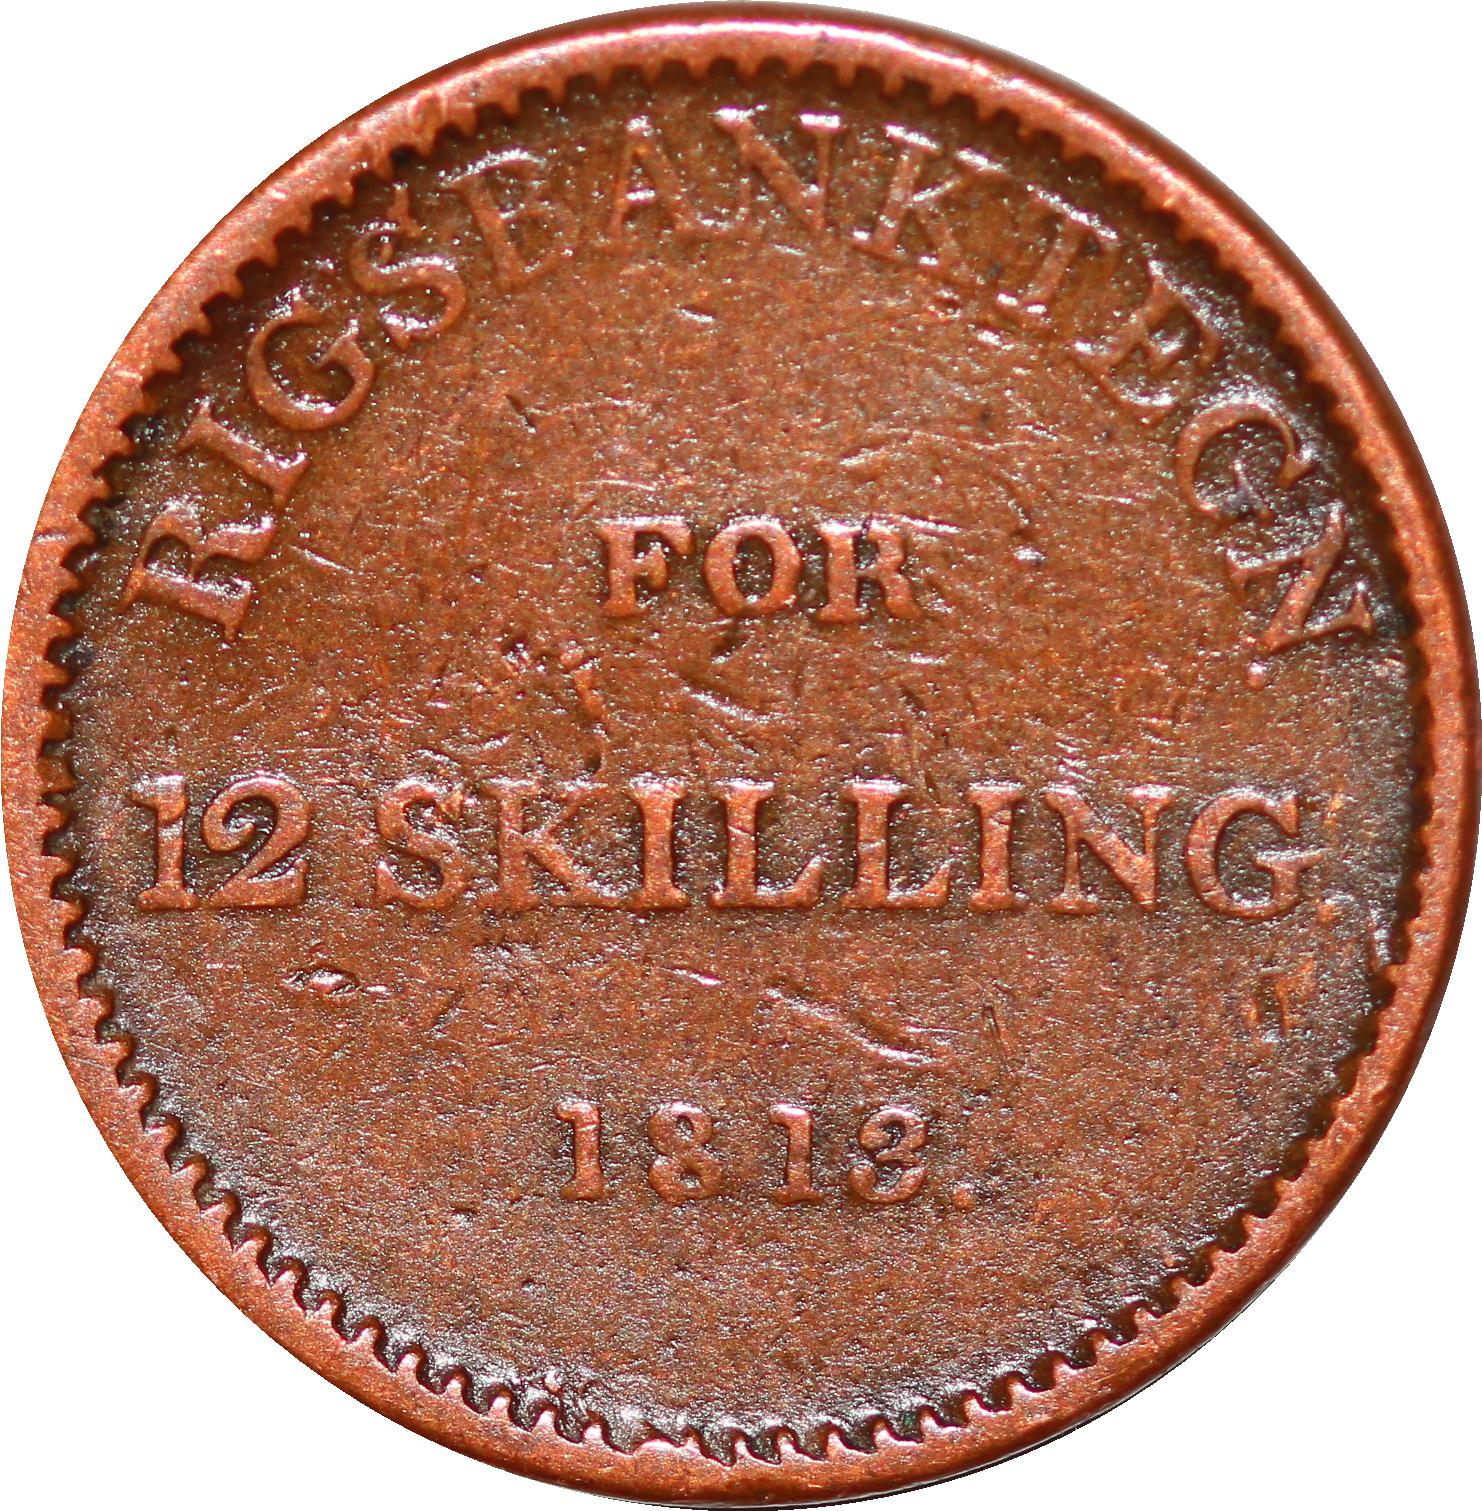 O9947 Denmark 12 Skilling Frederik VI Rigsbank Token 1813 -> Make offer